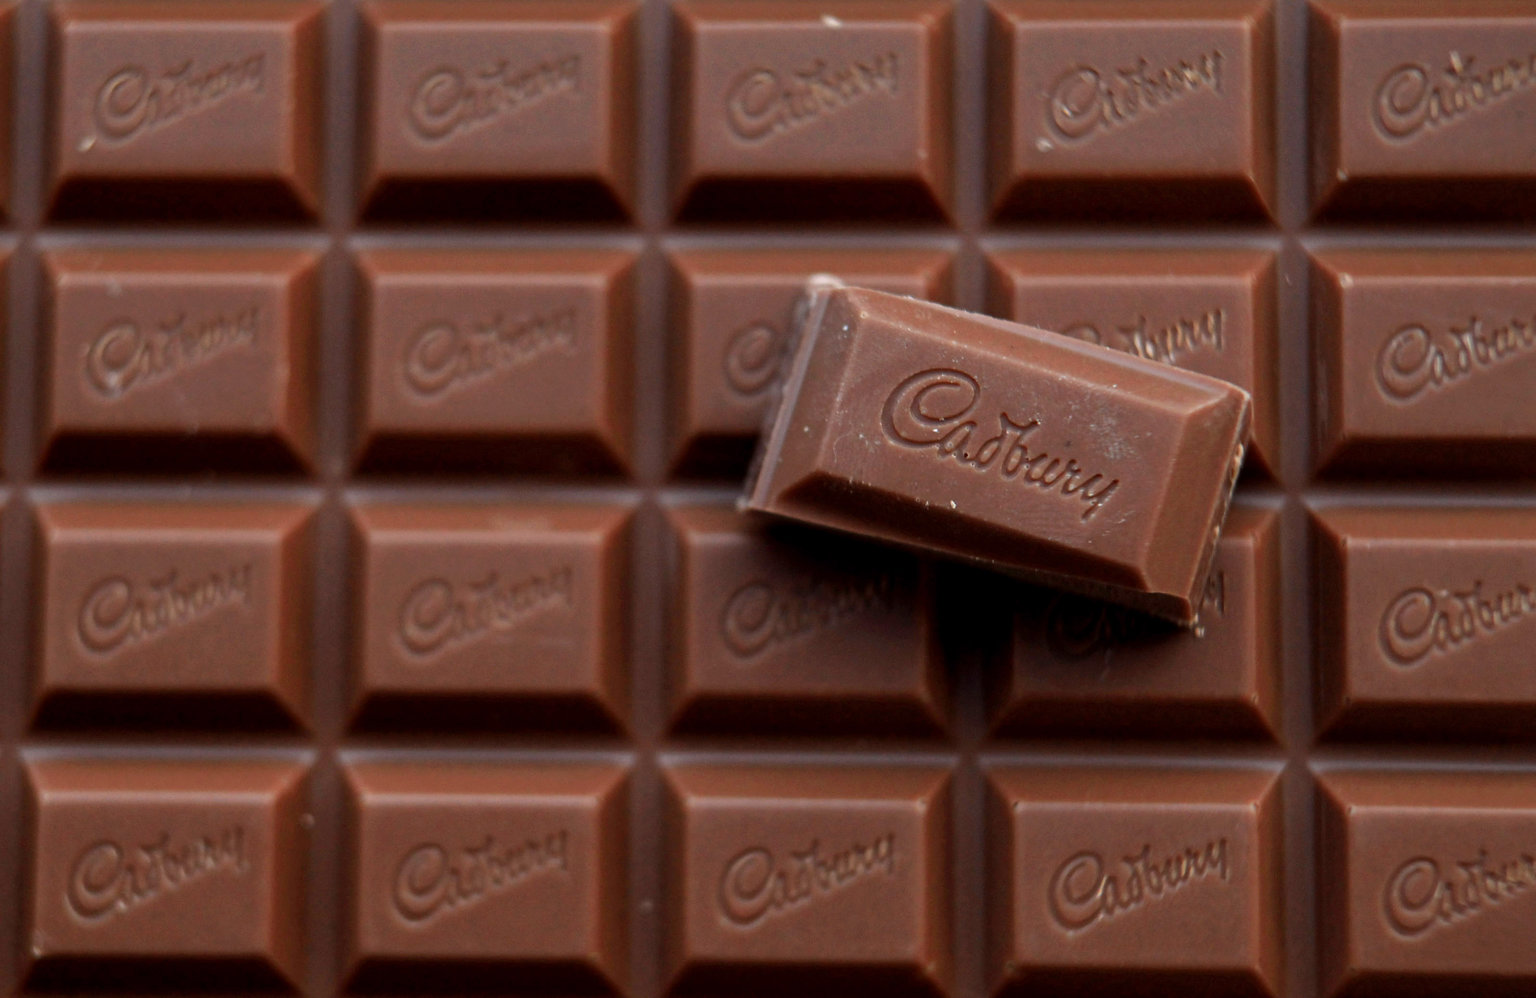 BRISTOL, ENGLAND - JANUARY 19: In this photograph illustration a bar of Cadbury's Dairy Milk chocolate is seen on January 19, 2010 in Bristol, England. The US food giant Kraft has today agreed a takeover of Dairy Milk maker Cadbury in a deal worth 11 billion GBP, however many Cadbury workers remained concerned over the longterm future of their jobs. (Photo by Matt Cardy/Getty Images)